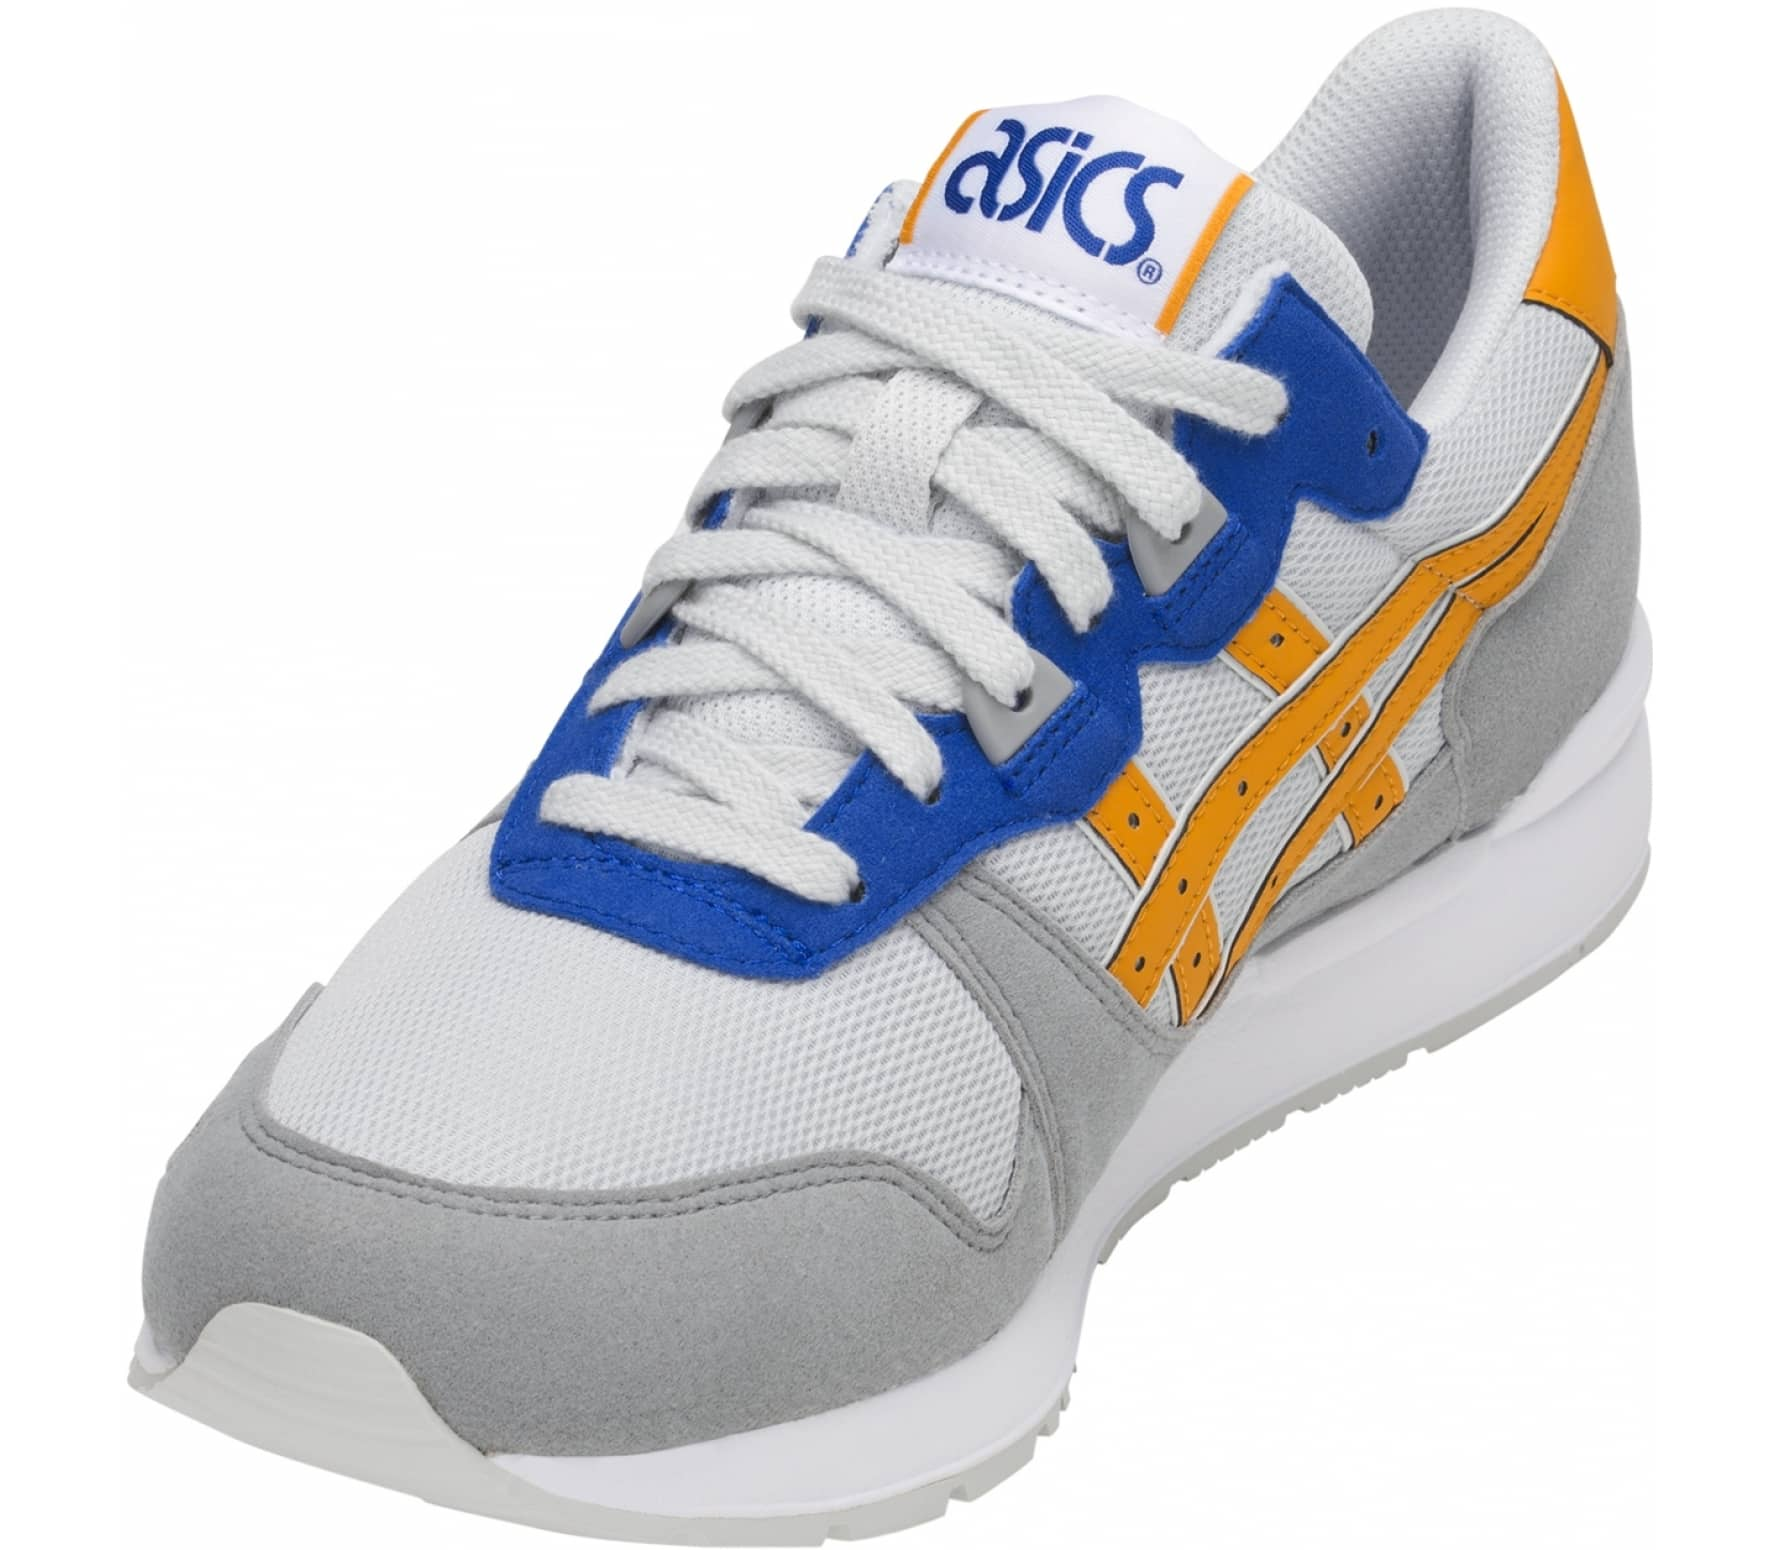 check out 7bd5d eff41 ASICS Tiger Gel-Lyte Unisex Sneakers grey